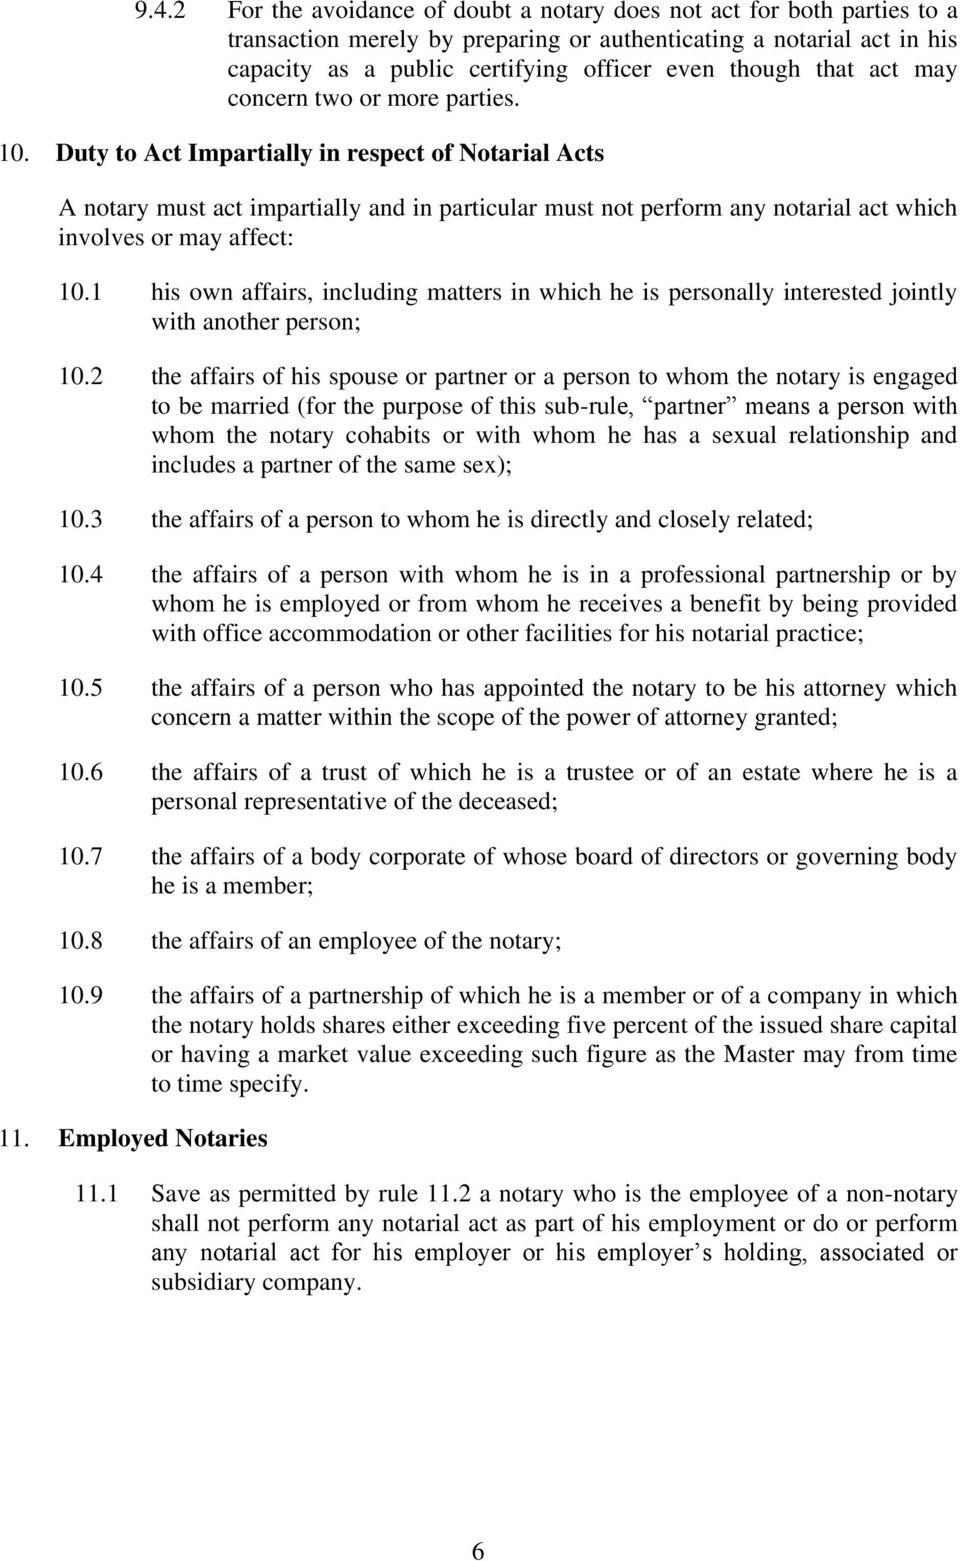 Duty to Act Impartially in respect of Notarial Acts A notary must act impartially and in particular must not perform any notarial act which involves or may affect: 10.